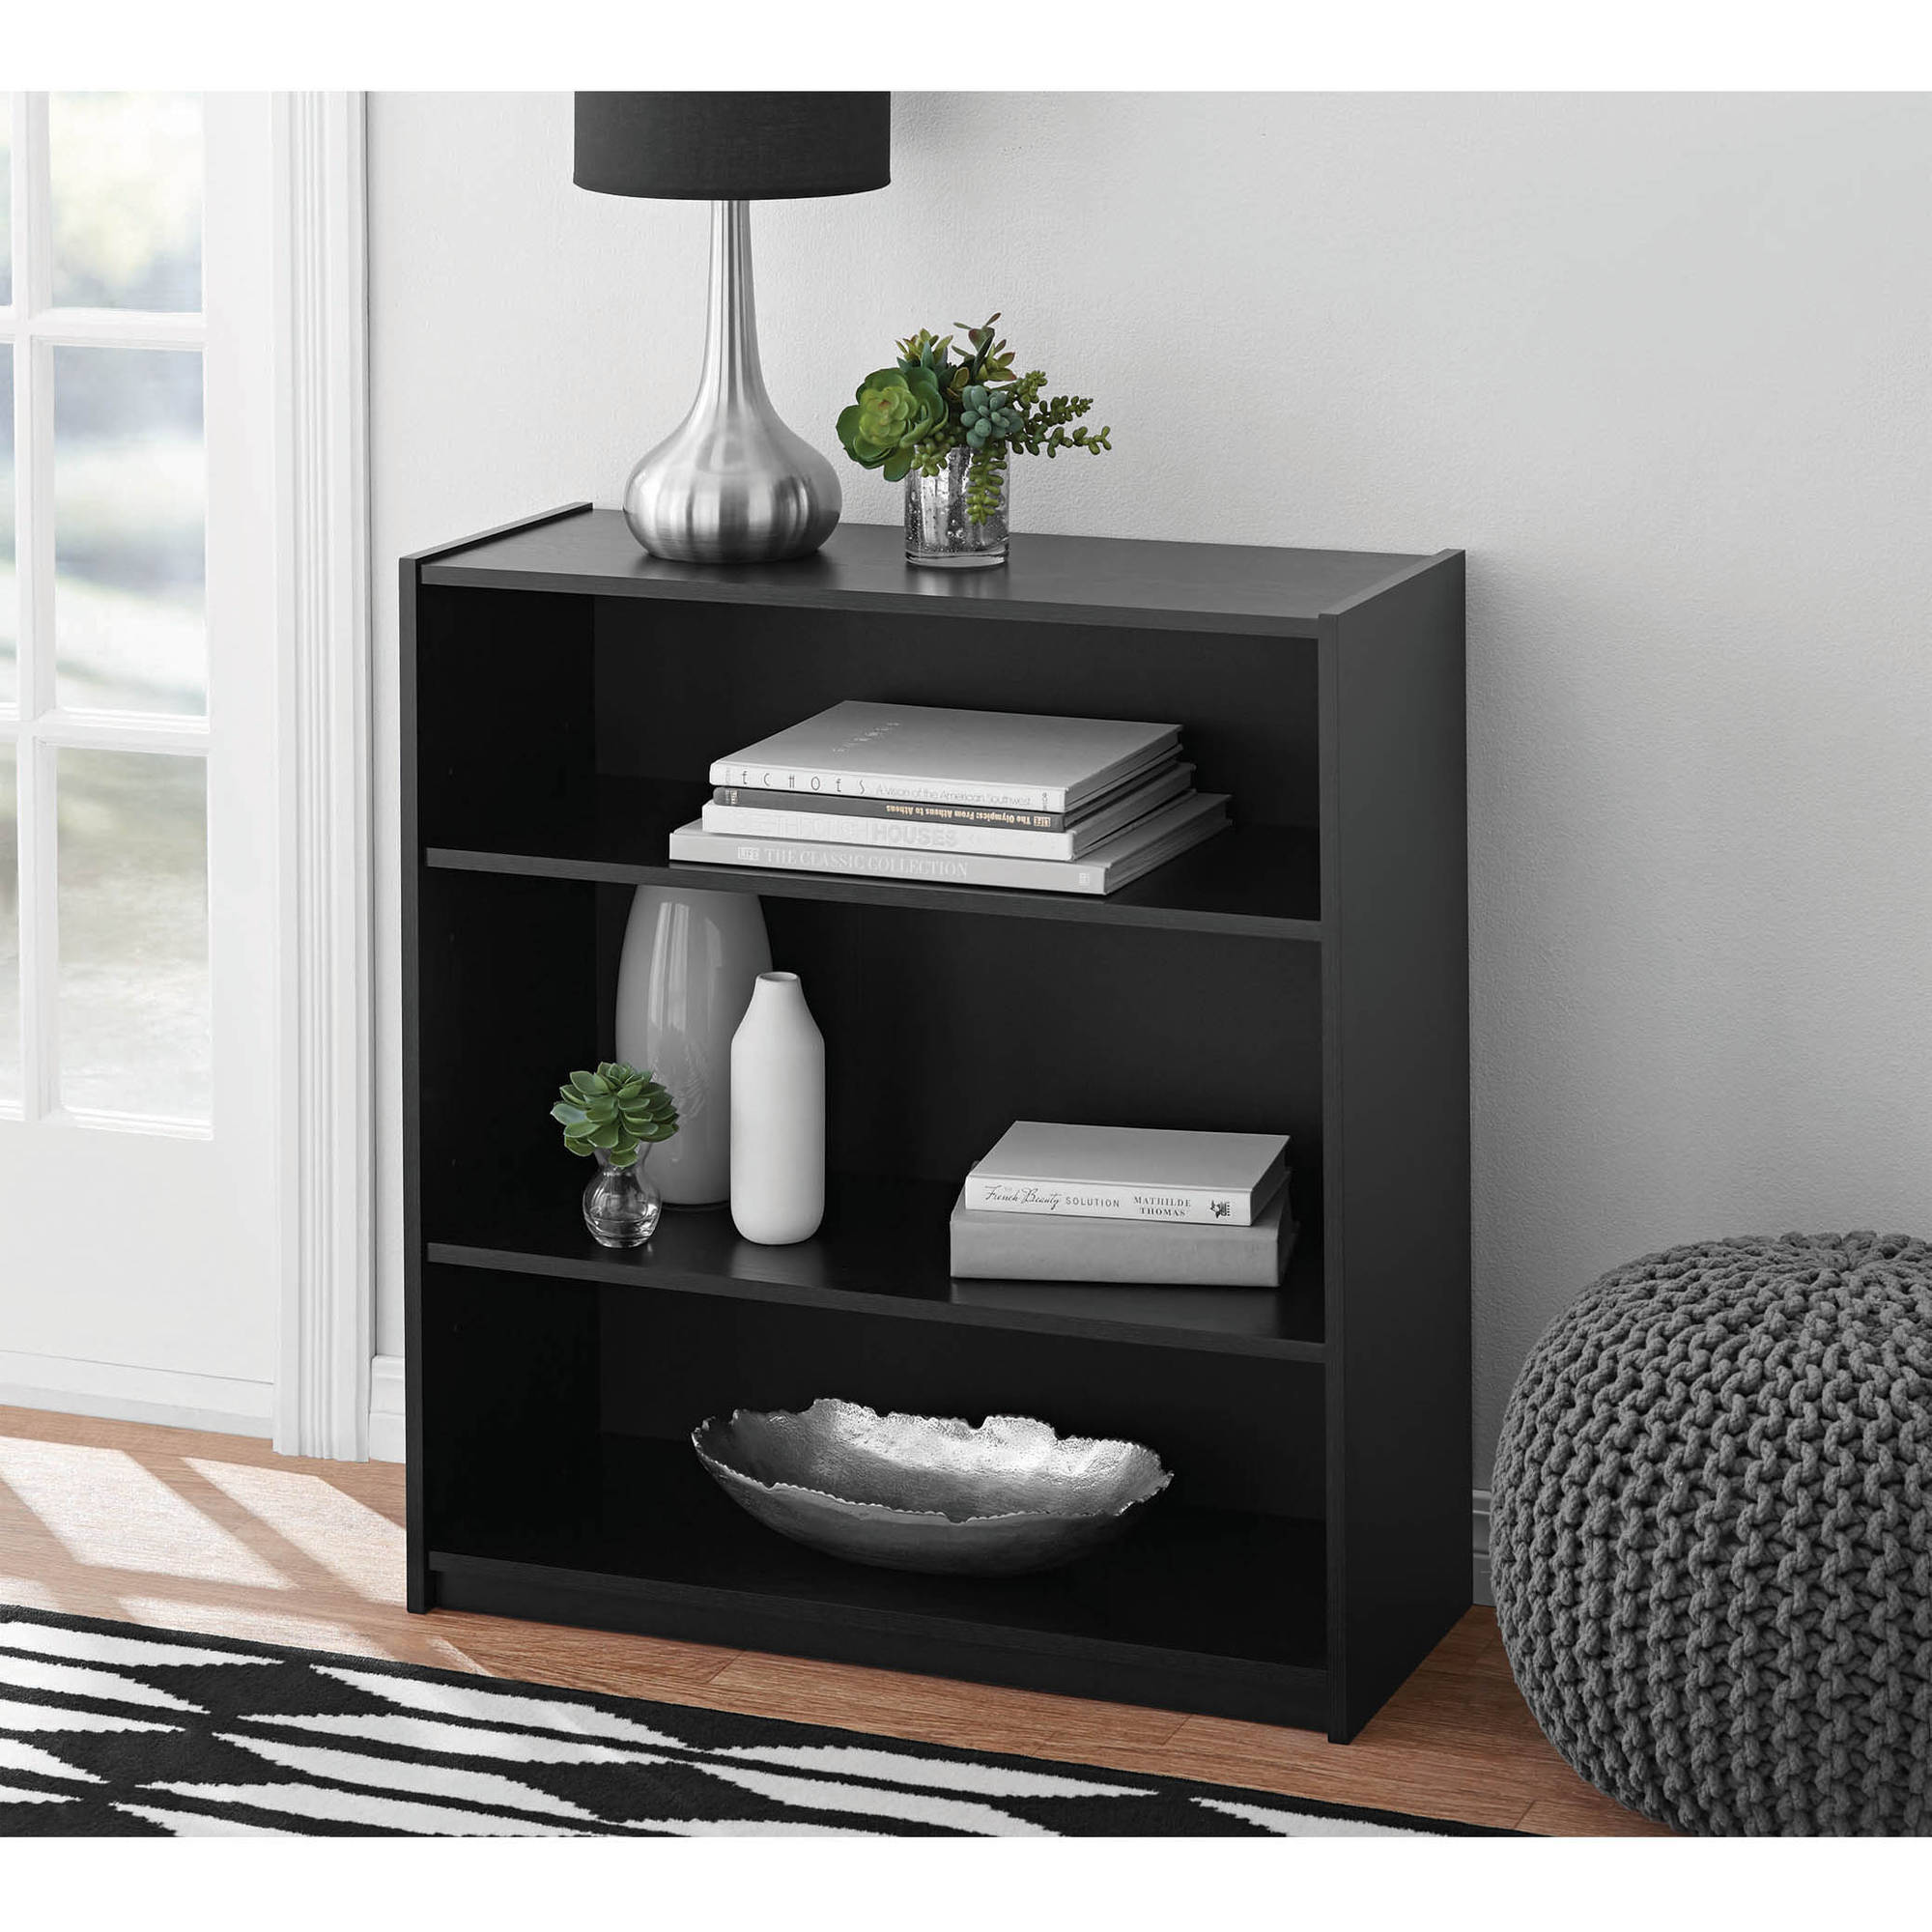 Mainstays 3-Shelf Standard Bookcase, Multiple Colors